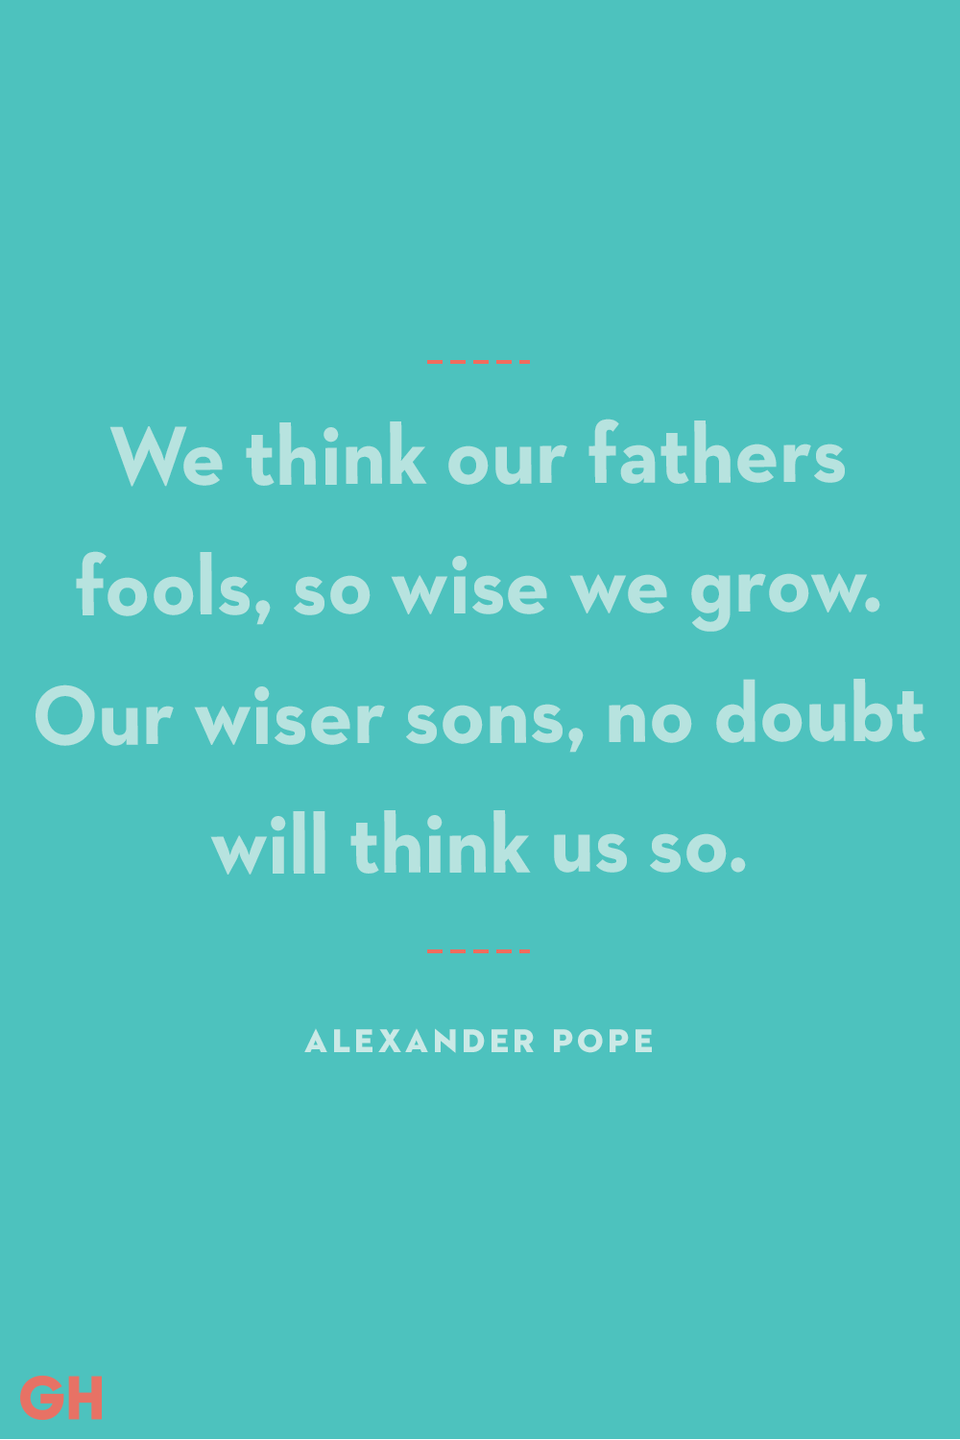 <p>We think our fathers fools, so wise we grow. Our wiser sons, no doubt will think us so.</p>